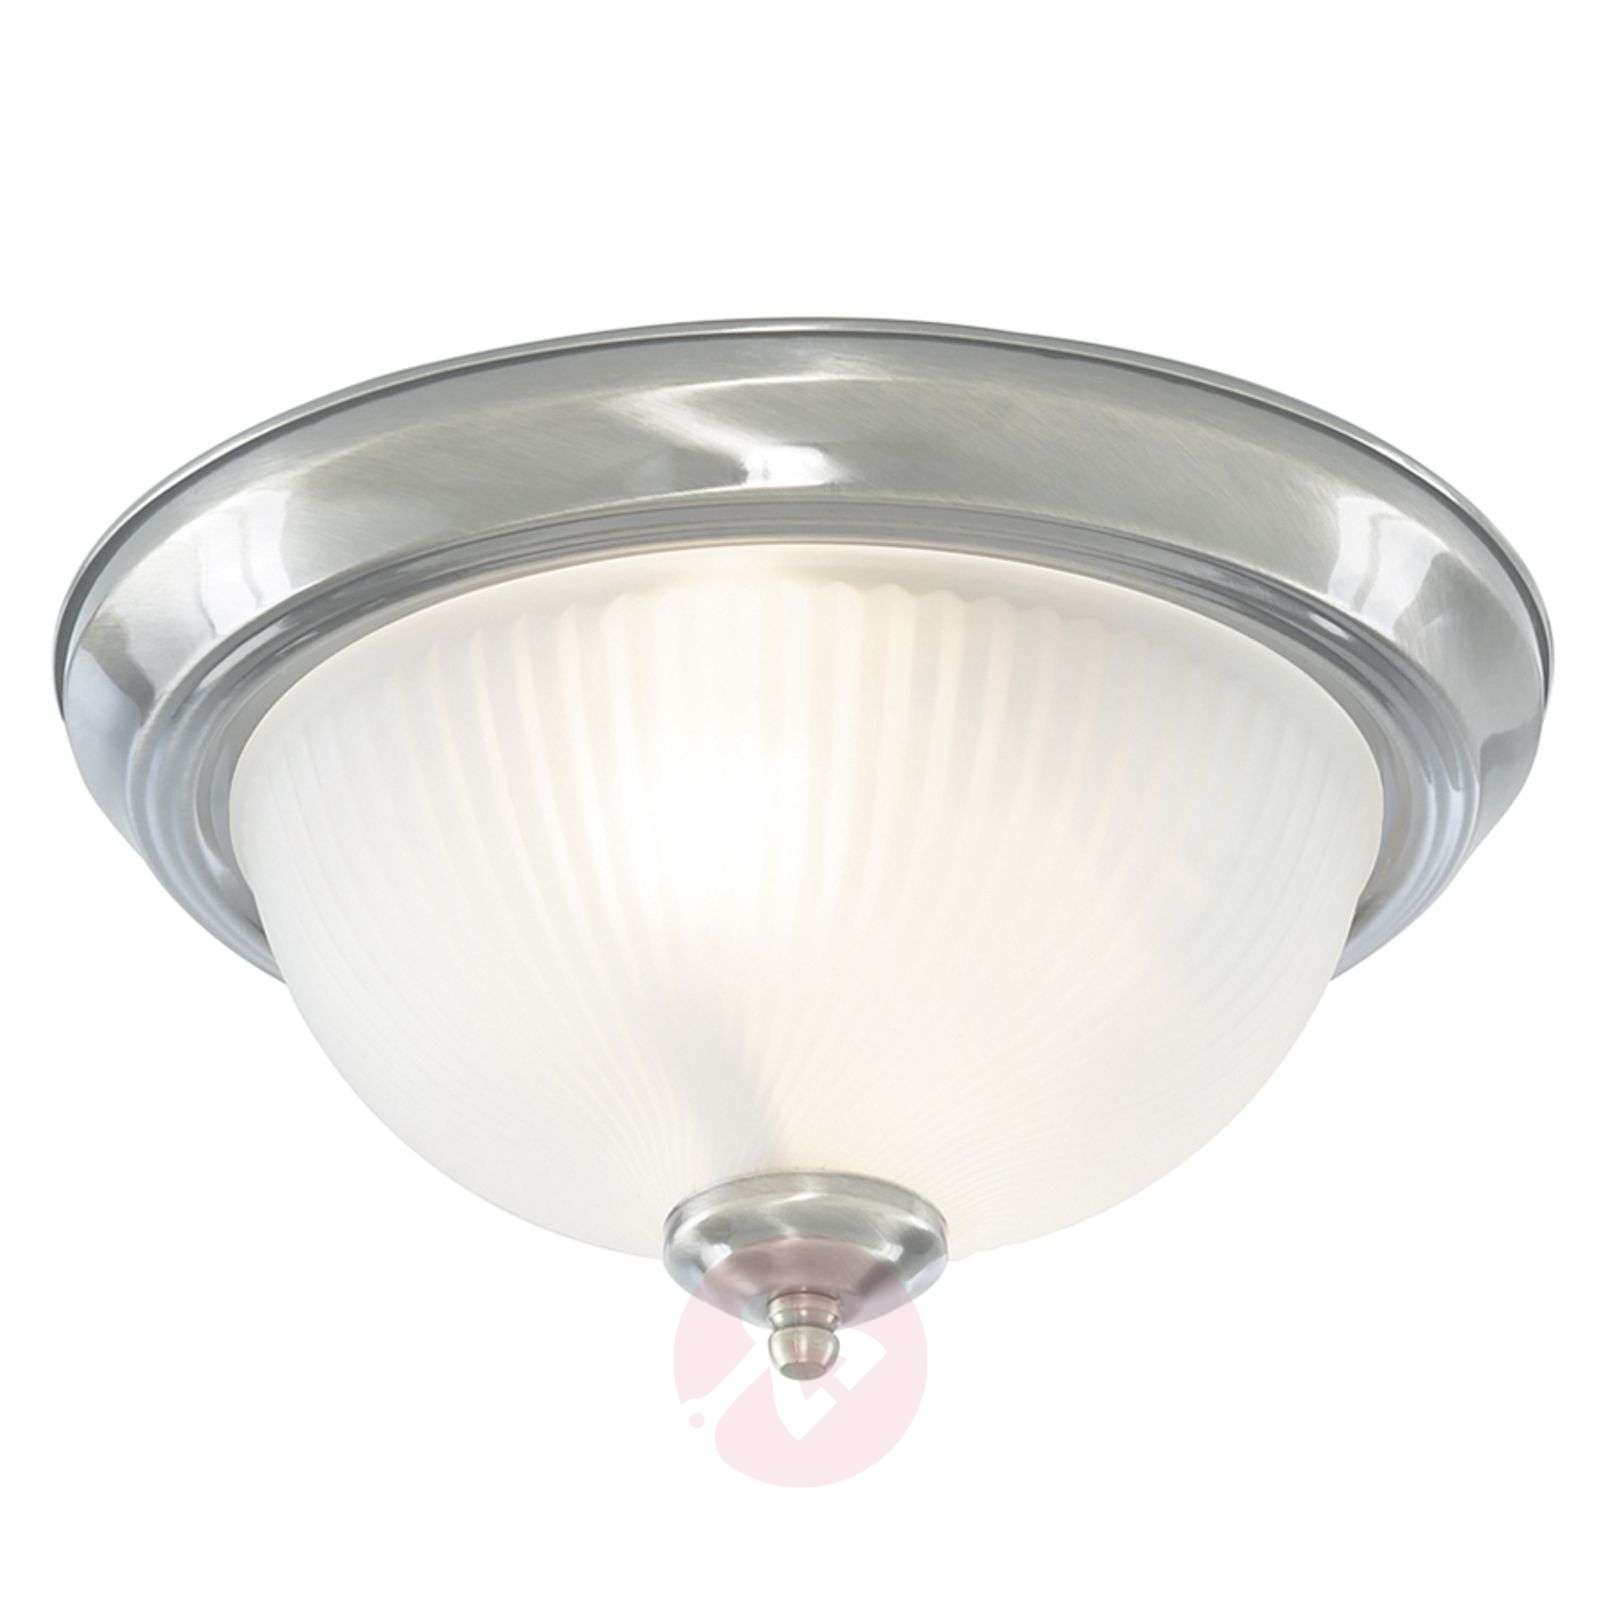 American Diner ceiling light-8570916-01